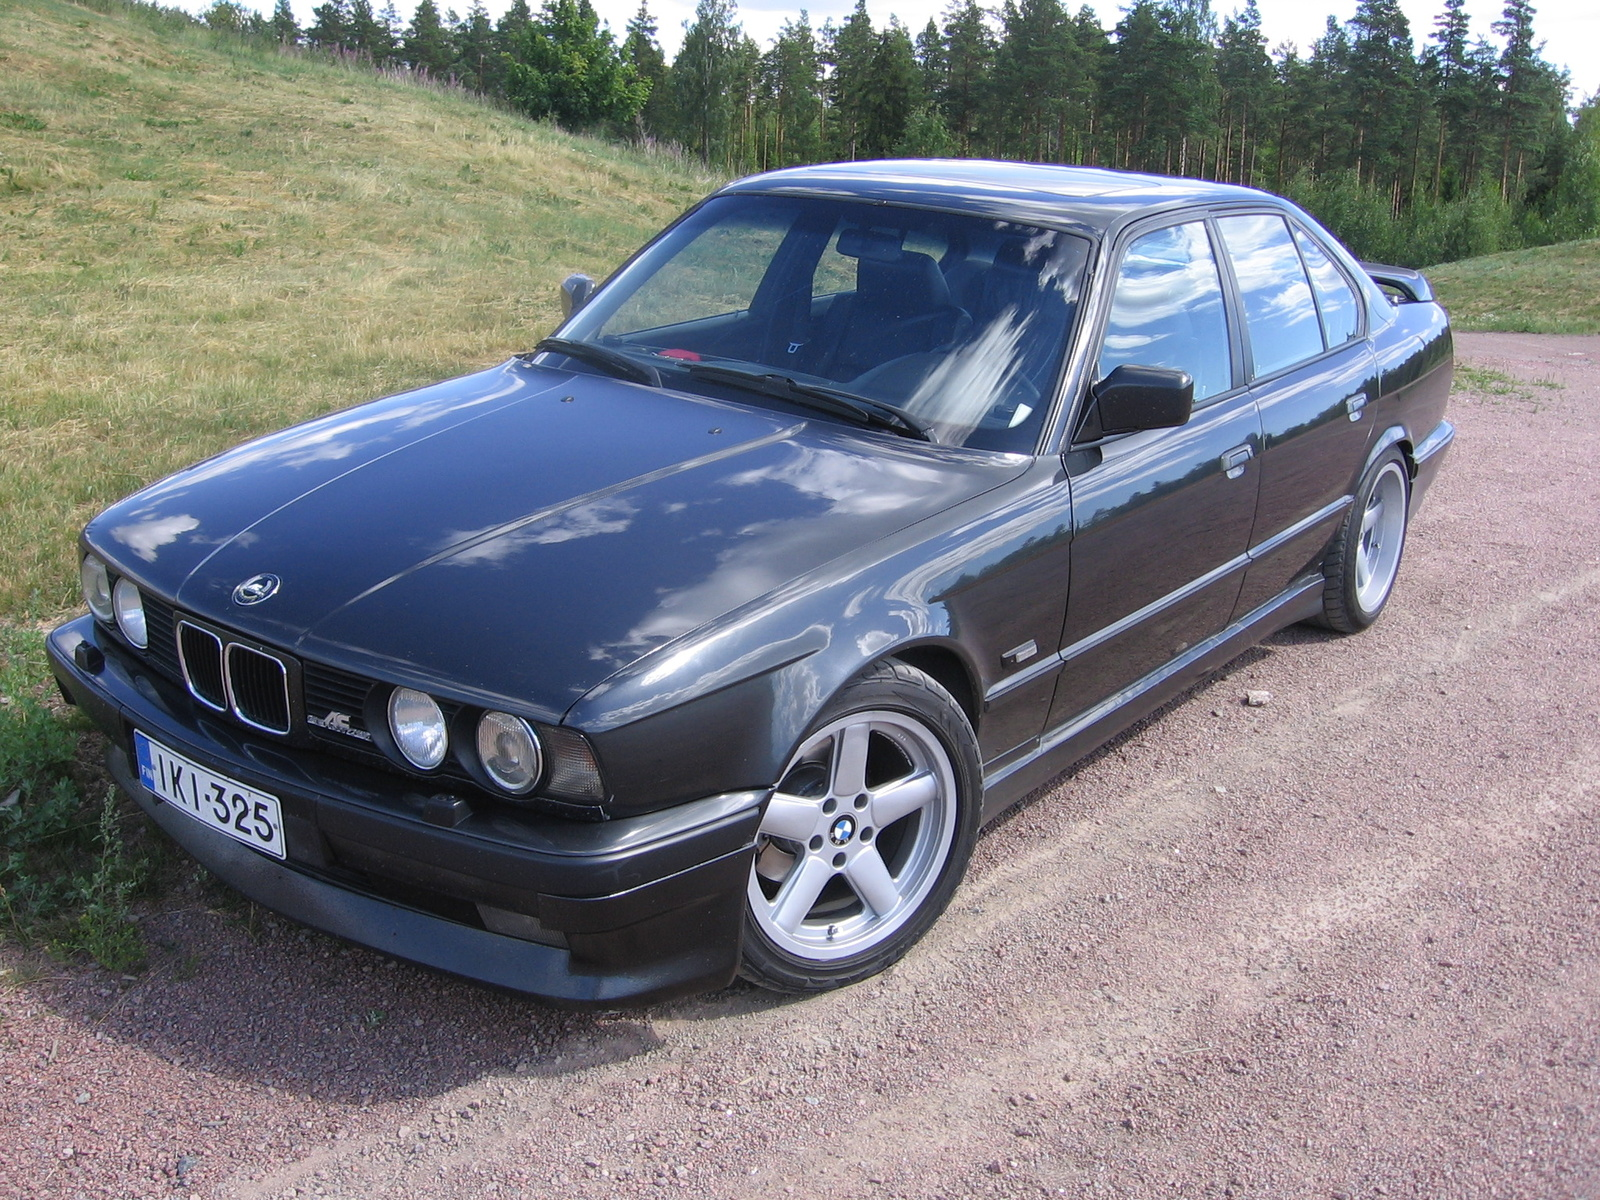 1992 Bmw 5 Series - Pictures